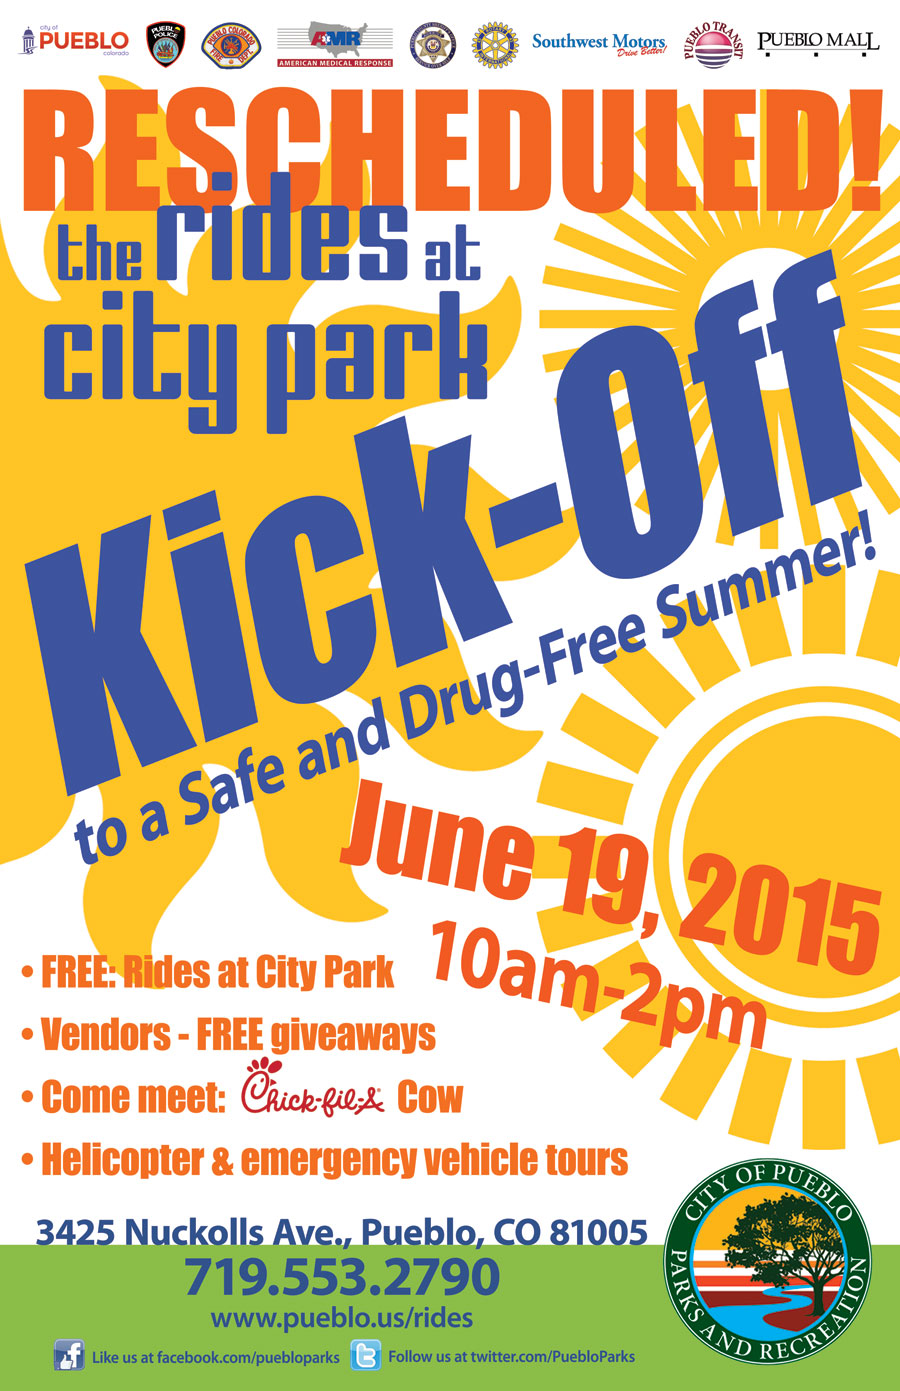 RESCHEDULED - Kick-off to a Safe and Drug-free Summer